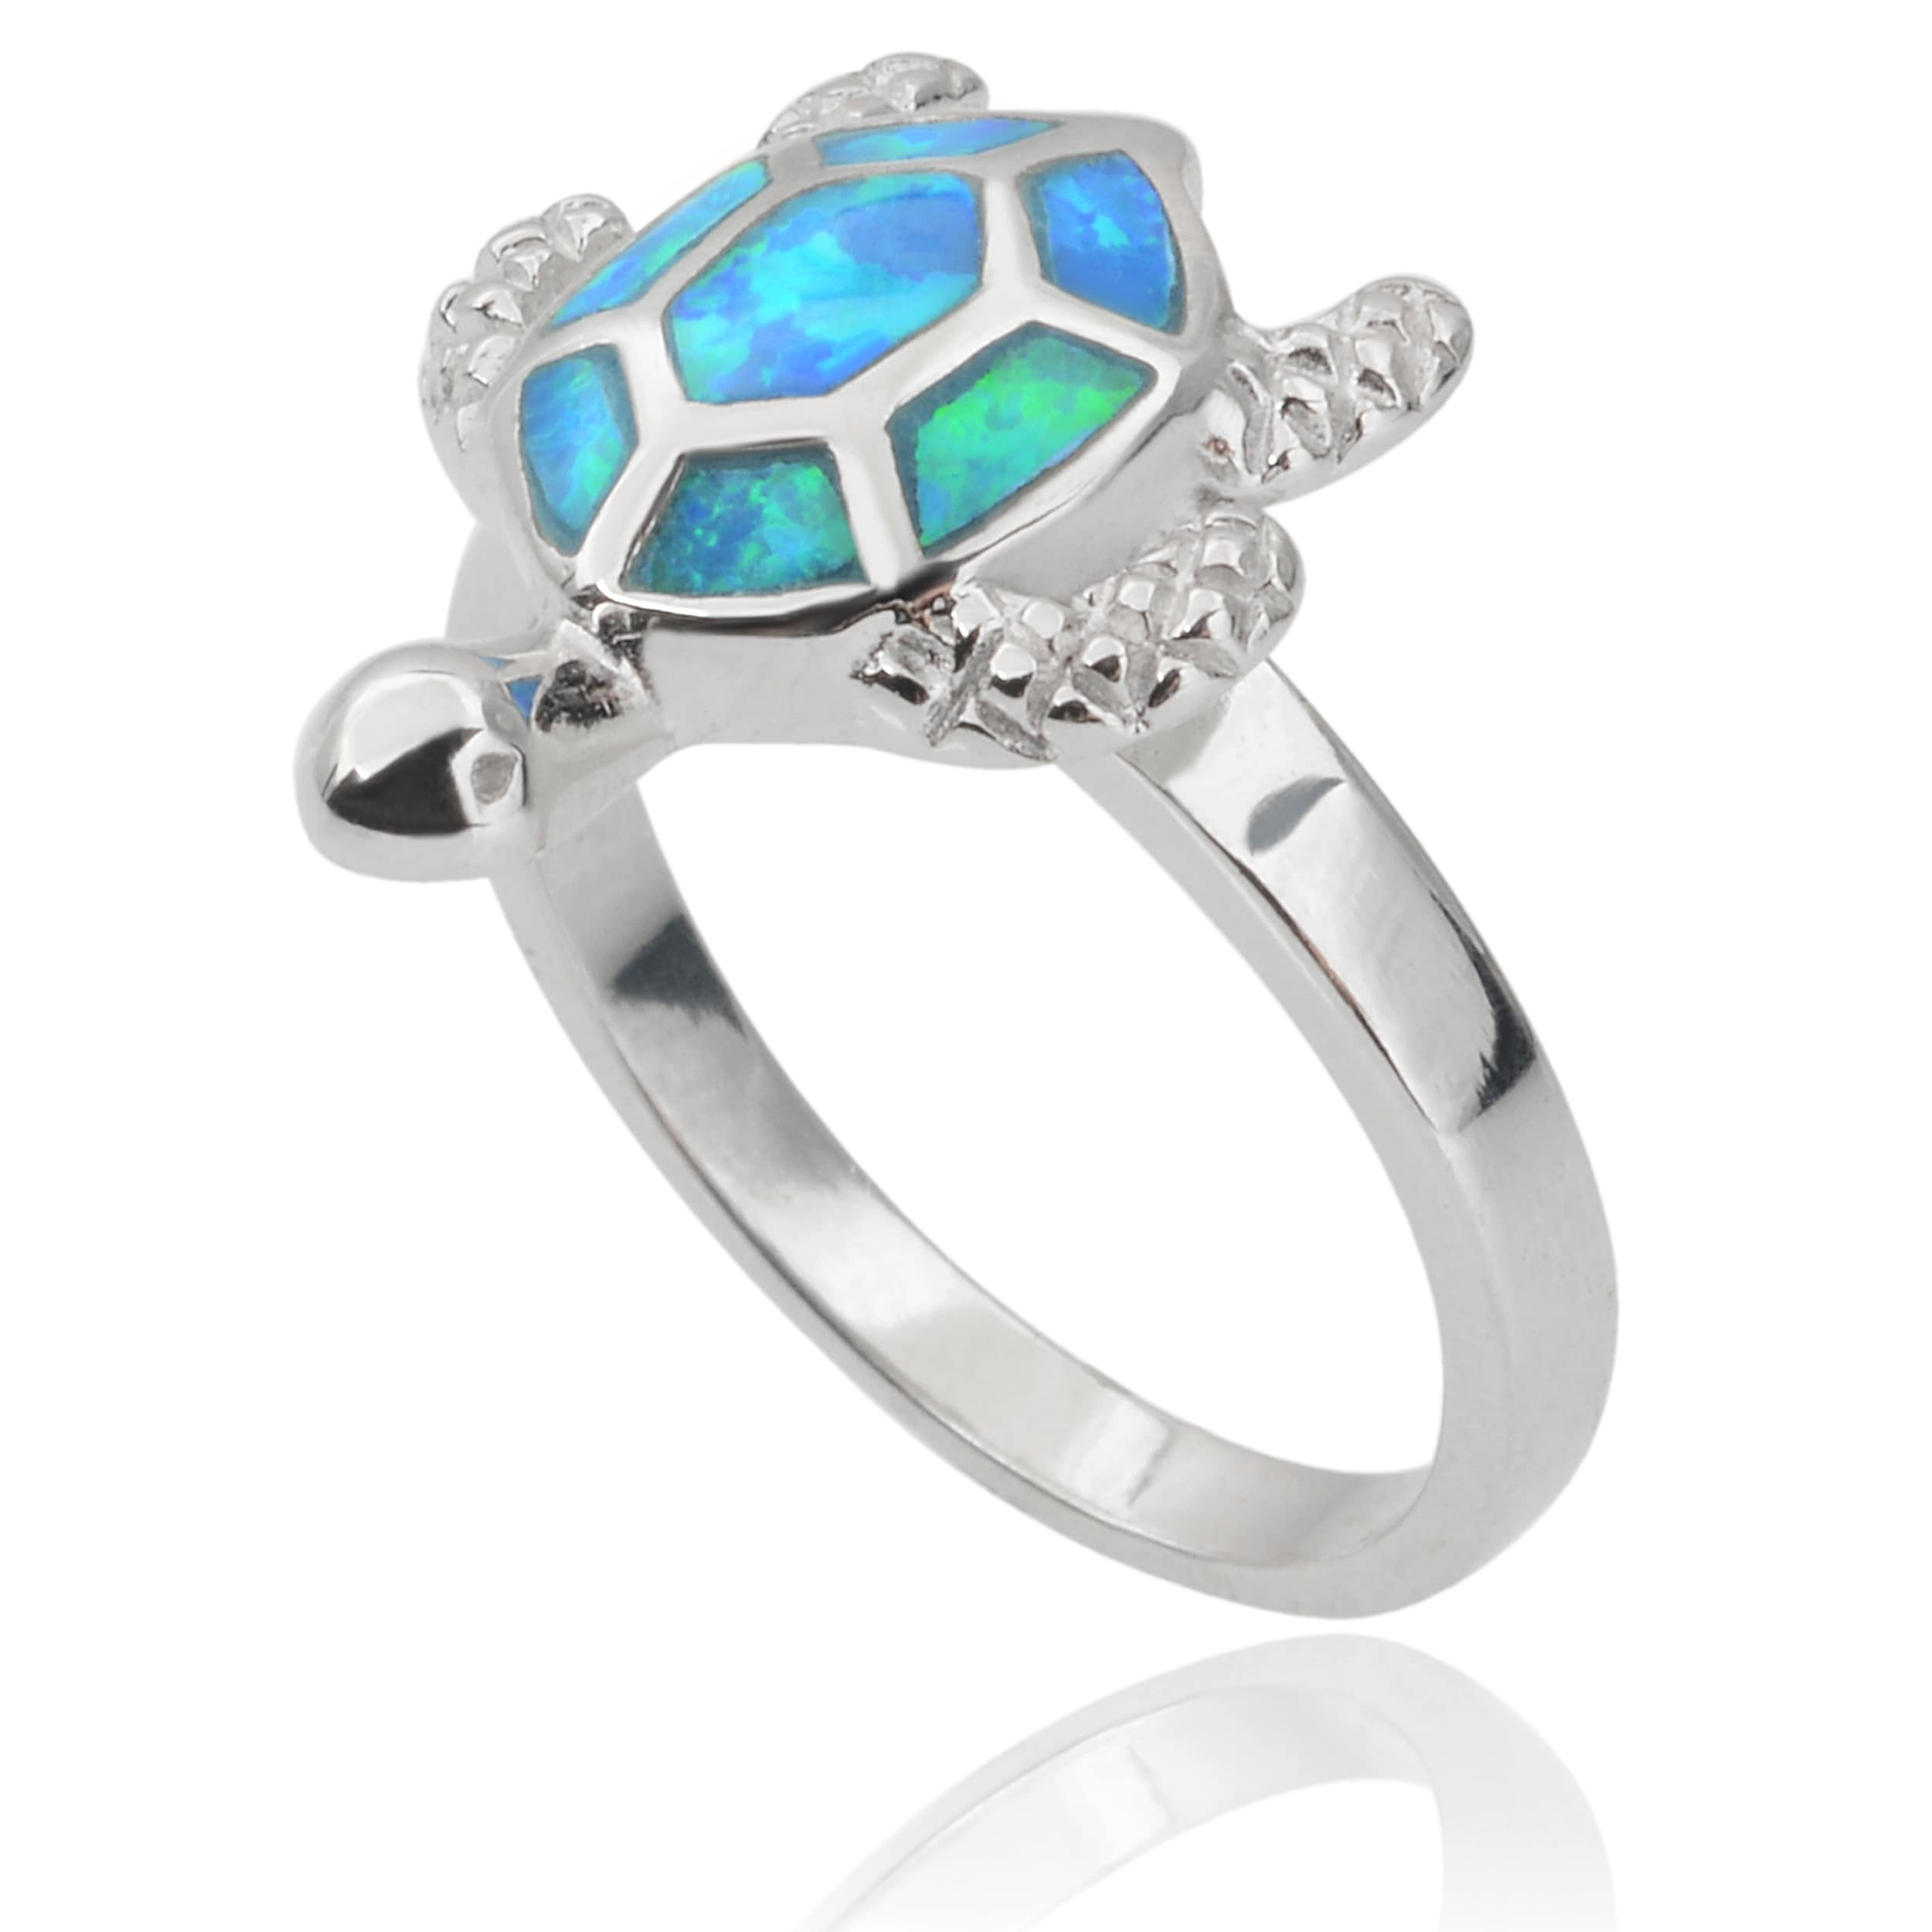 this brought at layer expertly sea rings with tilted turtle crafted after stamped details adorable center plain deeply pr to aeravida sterling the silver of life brilliant and ring products looks detail